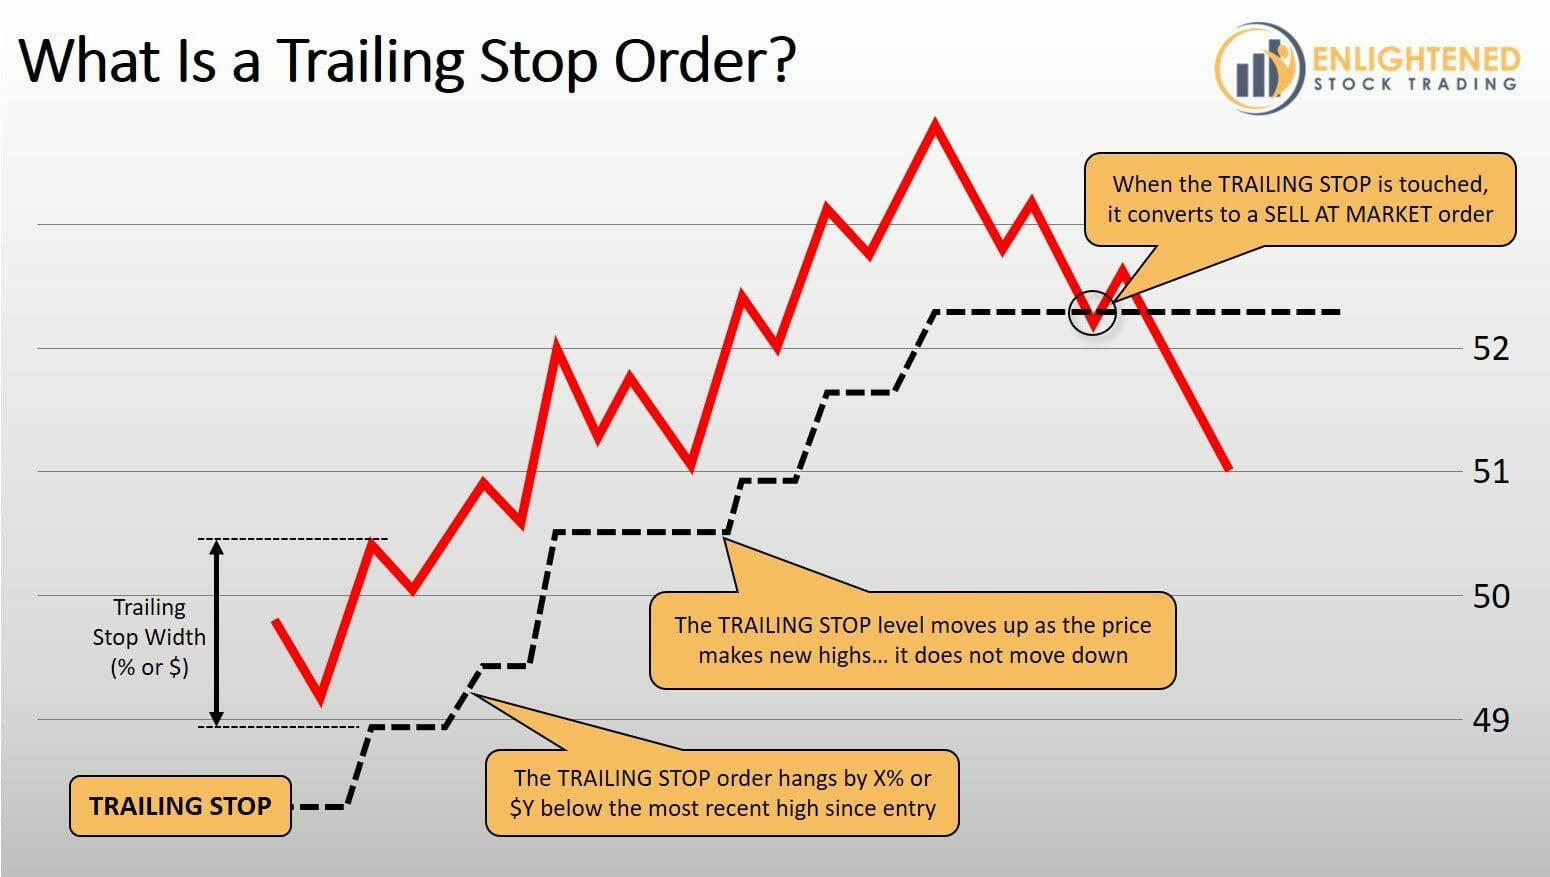 Stock Trading Order Types - What is a Trailing Stop Order Type - Trail